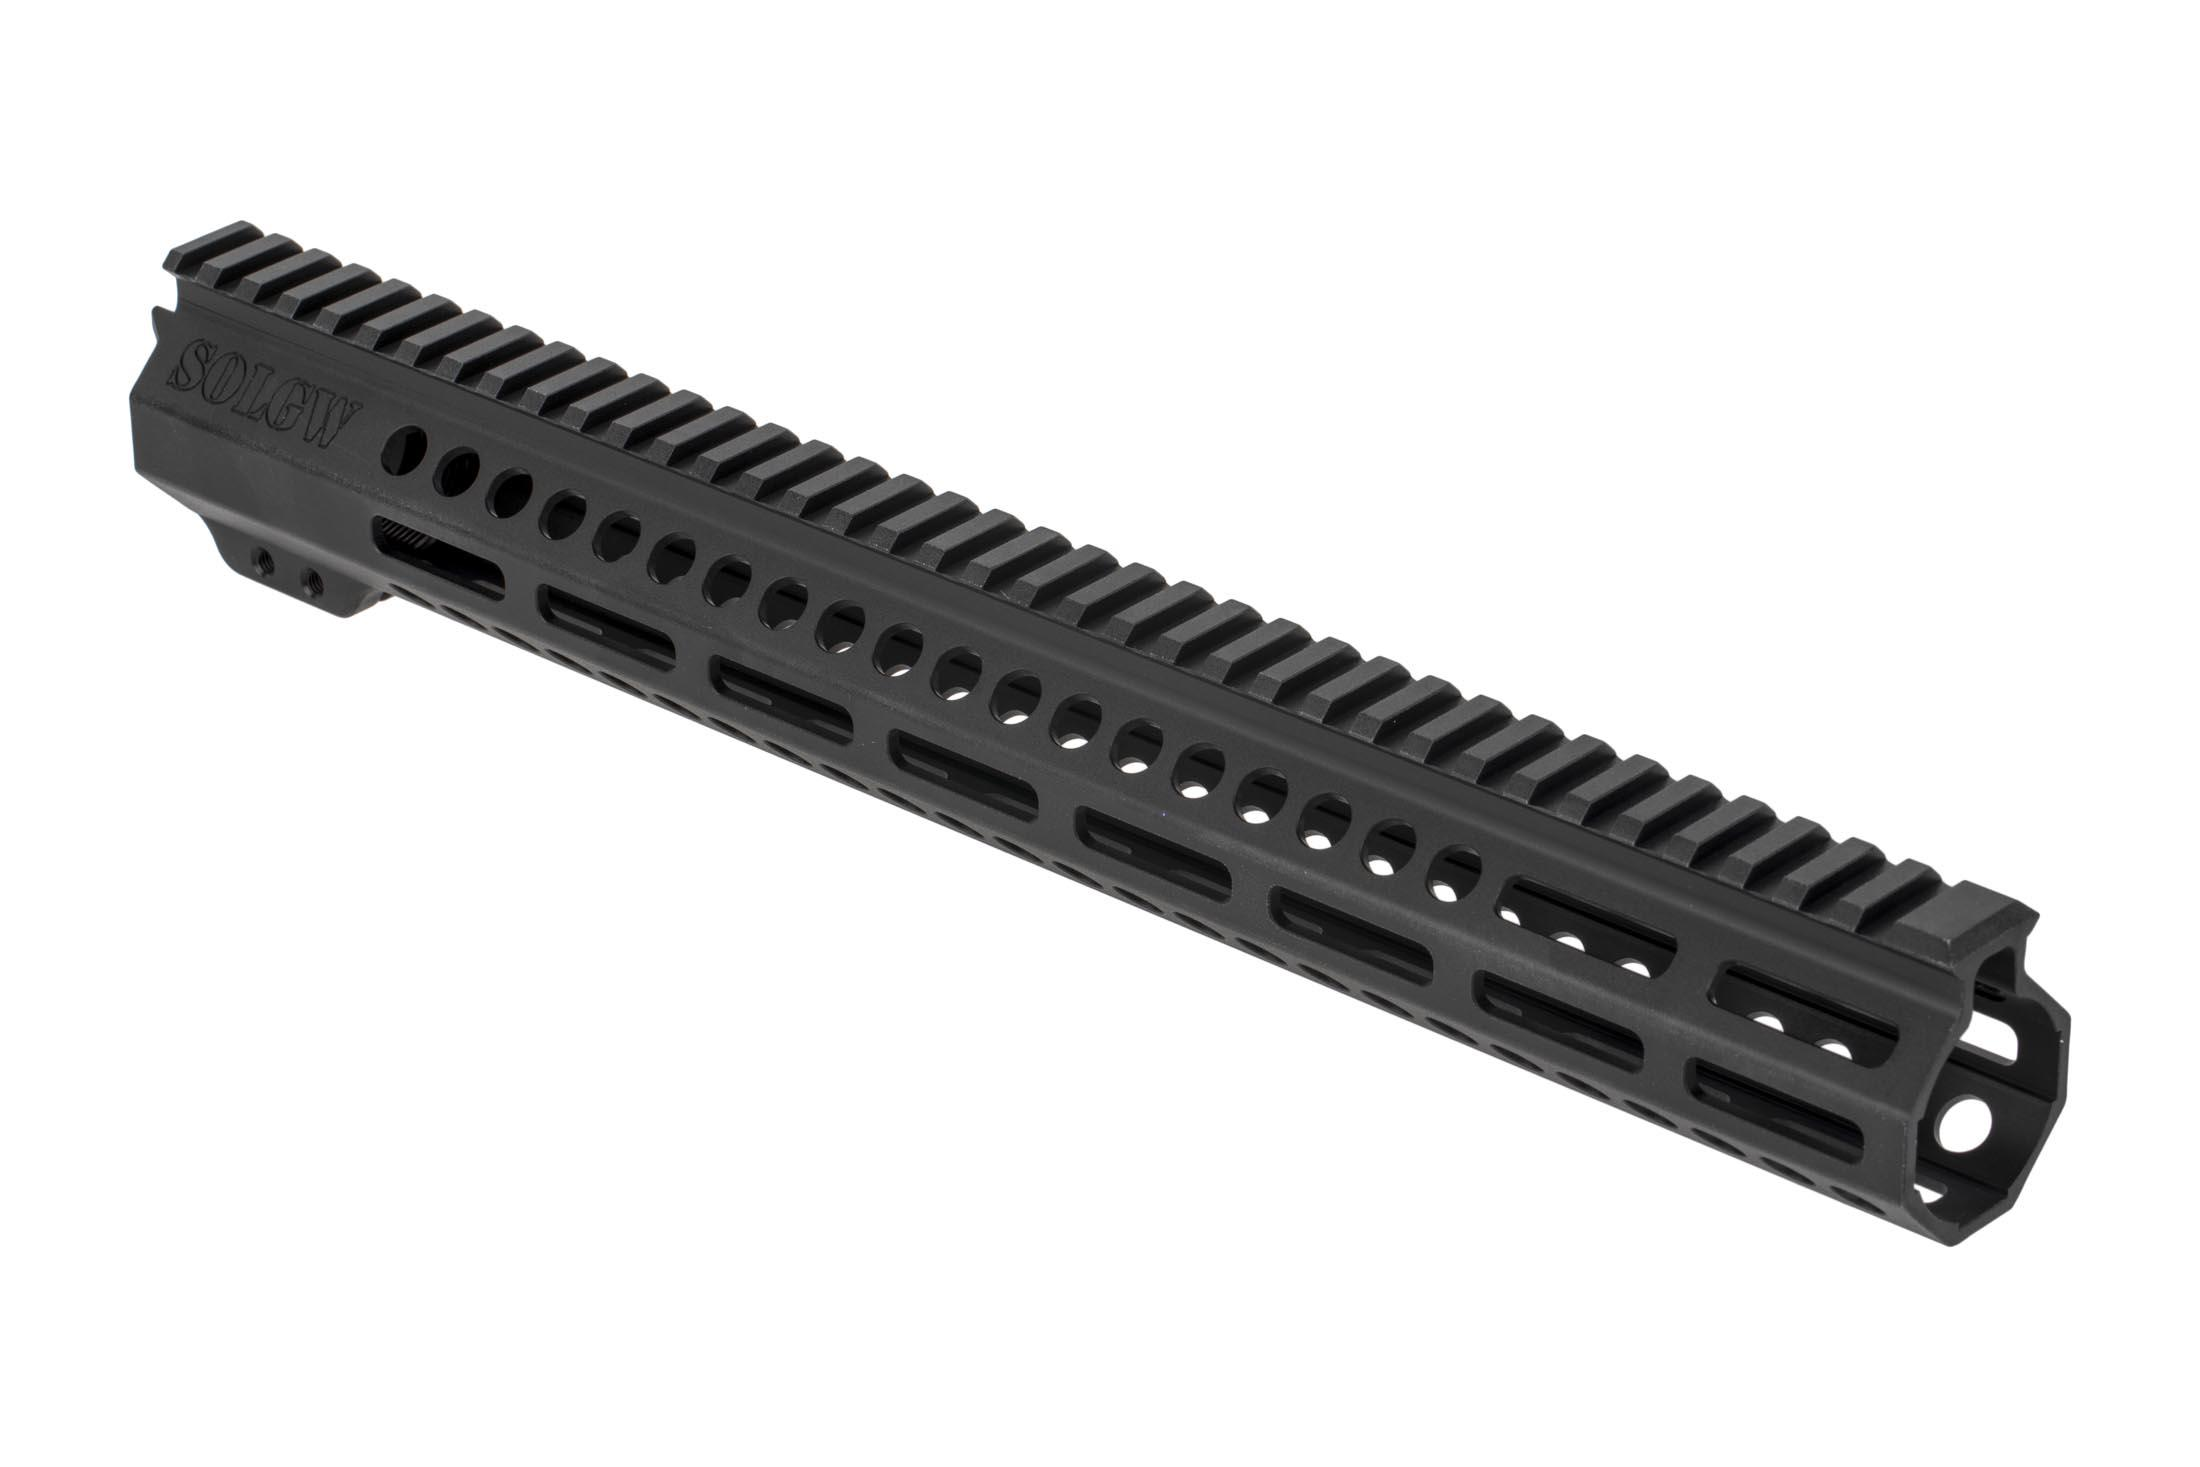 Sons of Liberty Gun Works Exo2 AR-15 handguard is 15in long, fully freefloated, and accepts M-LOK accessories